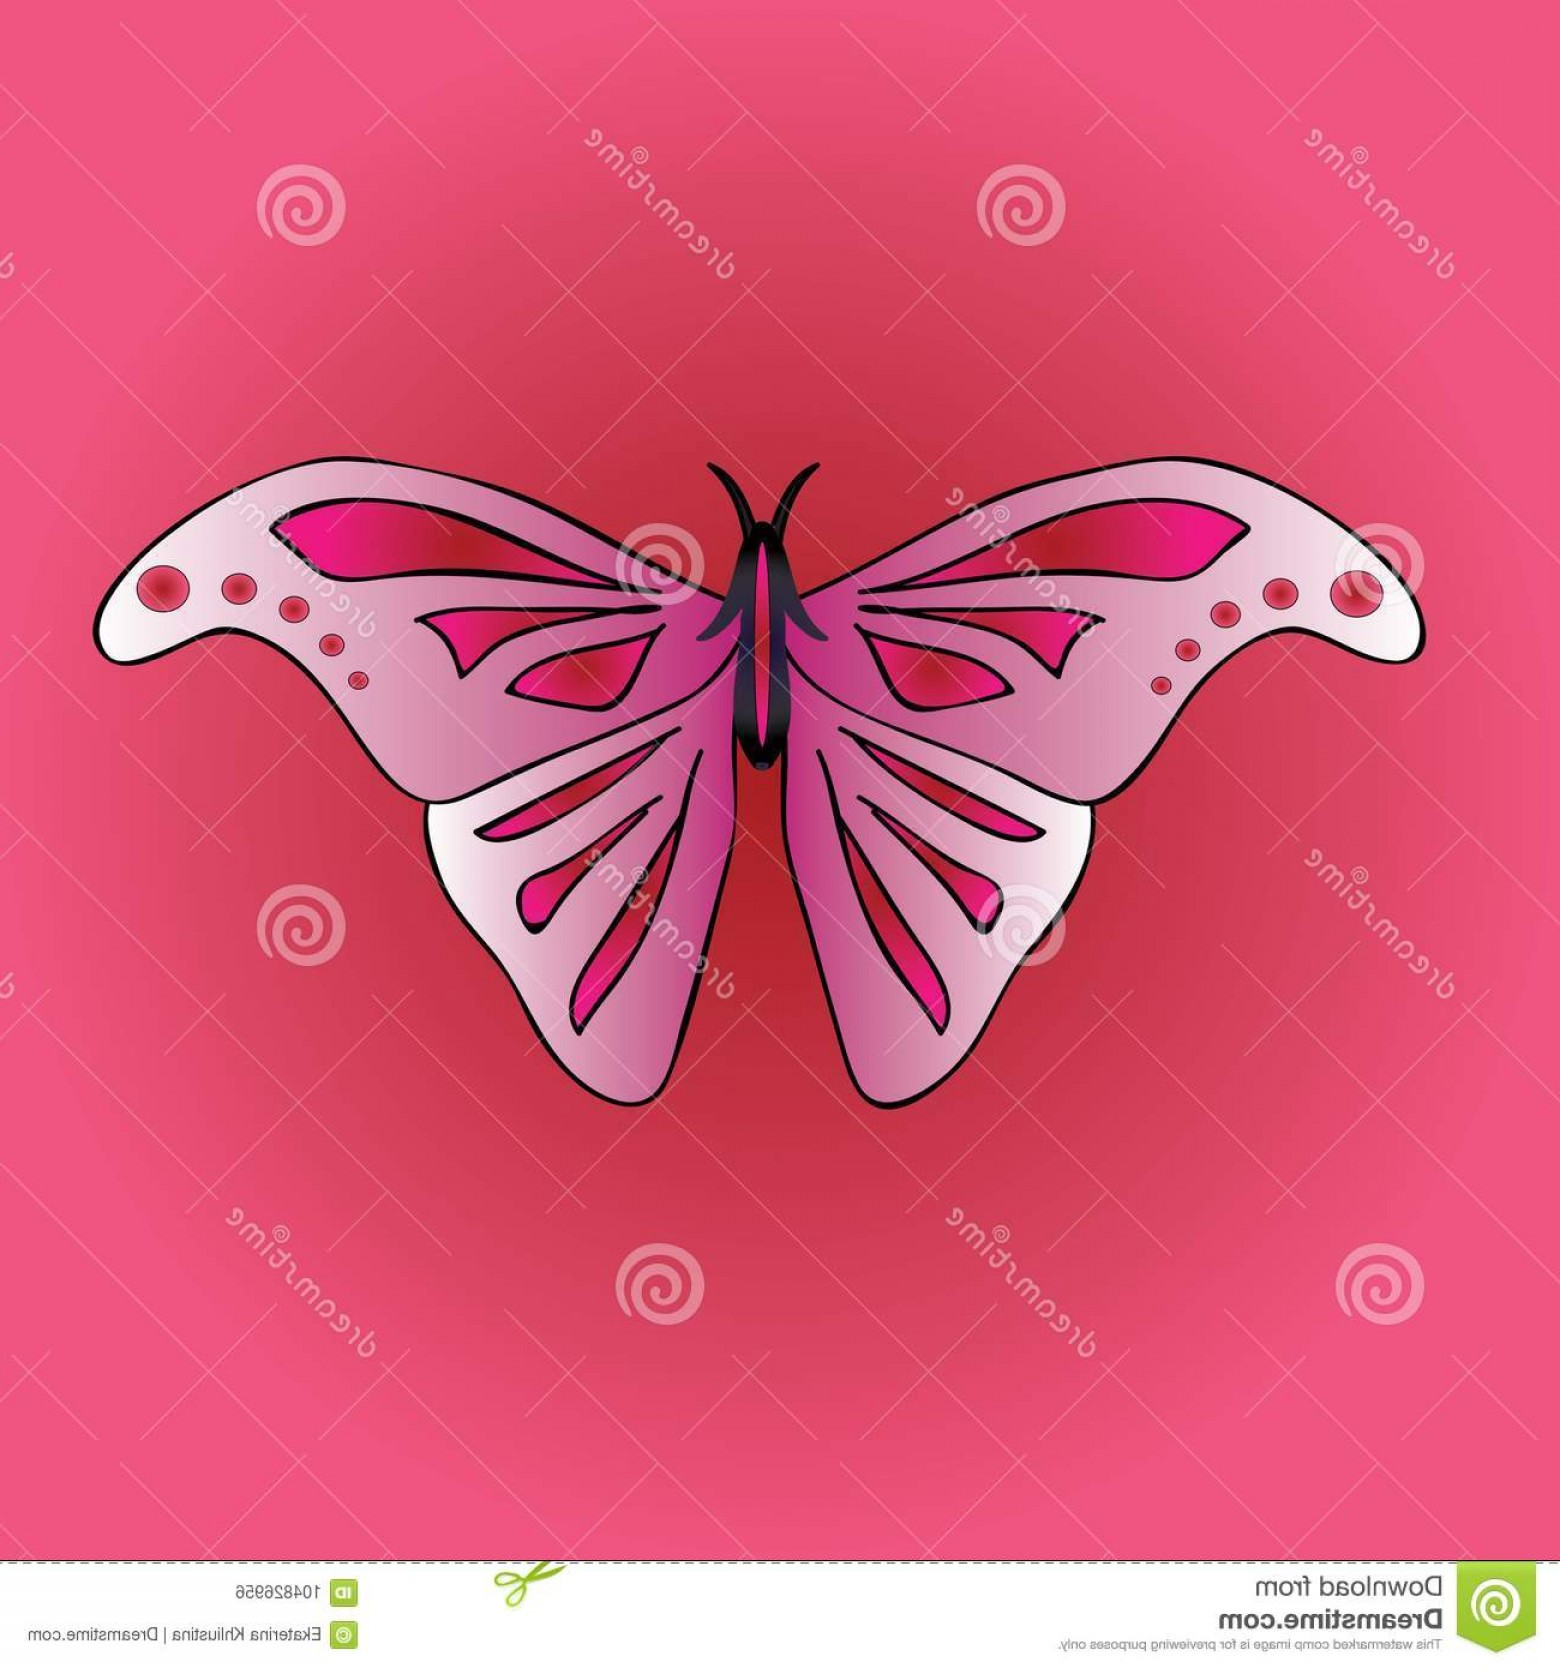 Vector Insect Light: Vector Image Large Symmetrical Butterfly Wings Insect Light Pink Beautiful Crimson Pattern Background Stylish Image